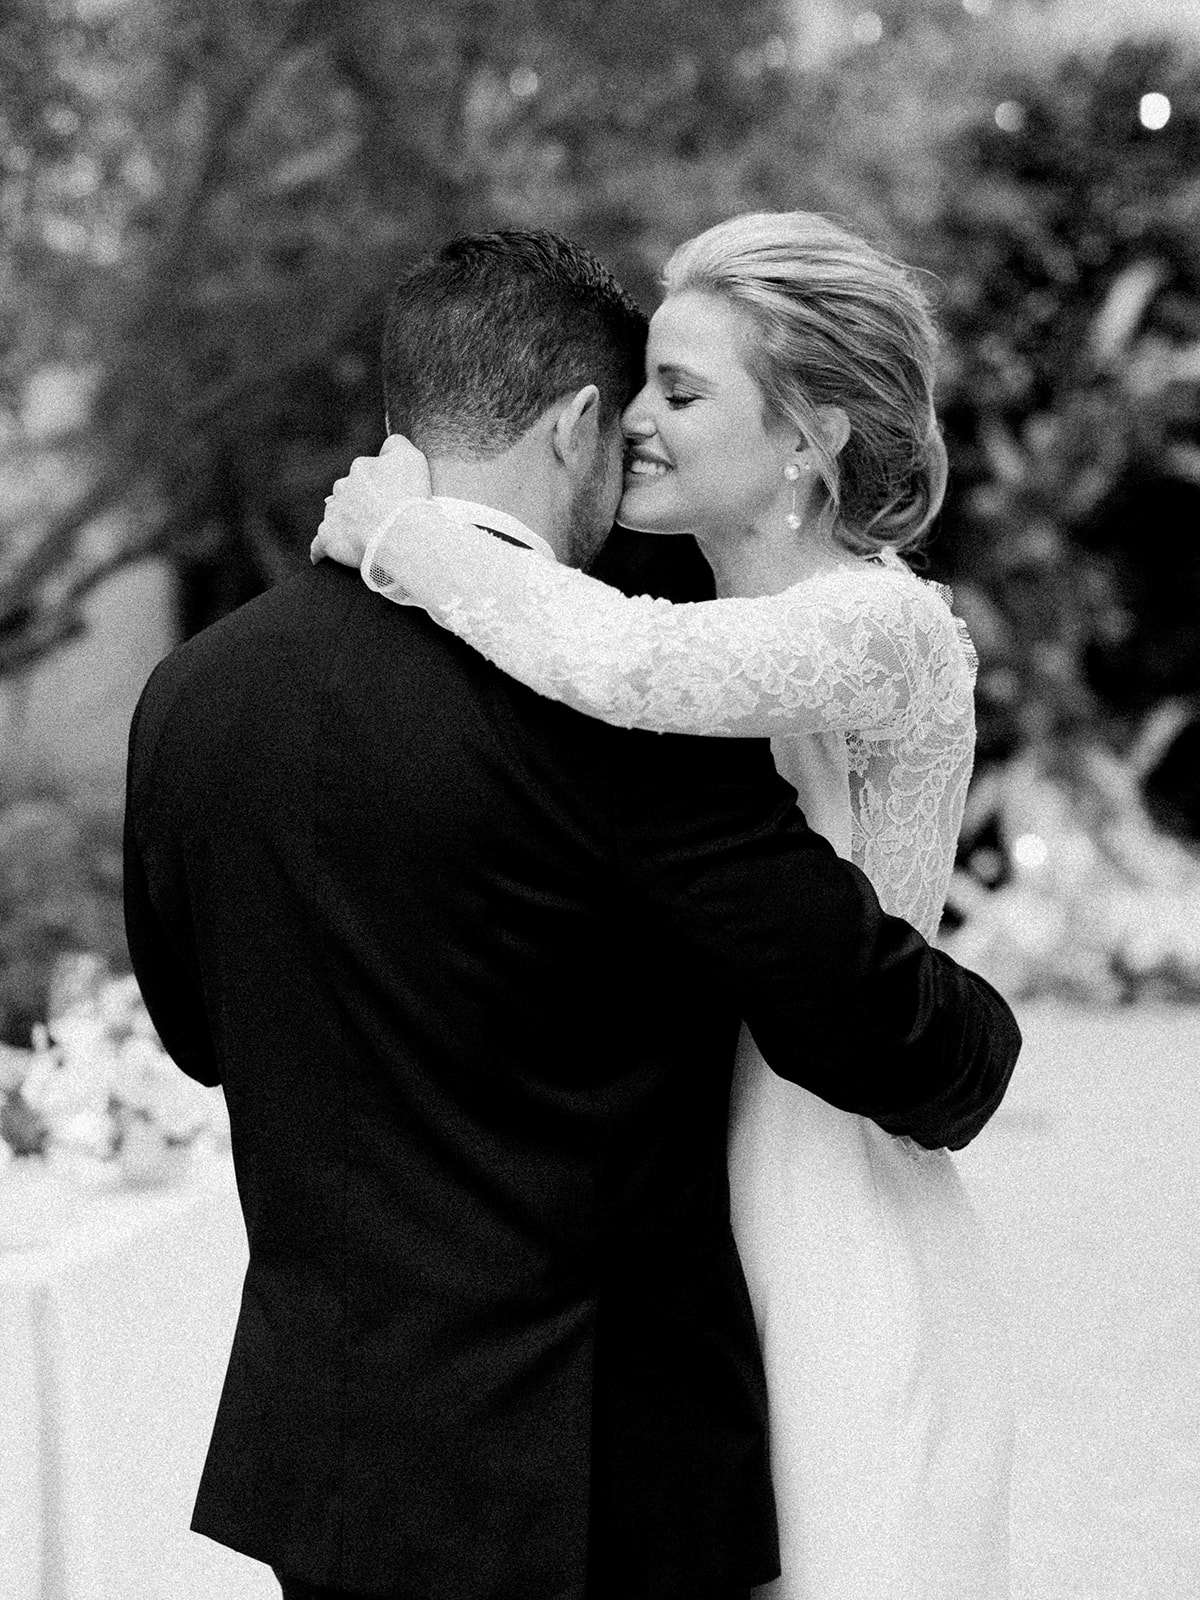 couple embracing for first dance